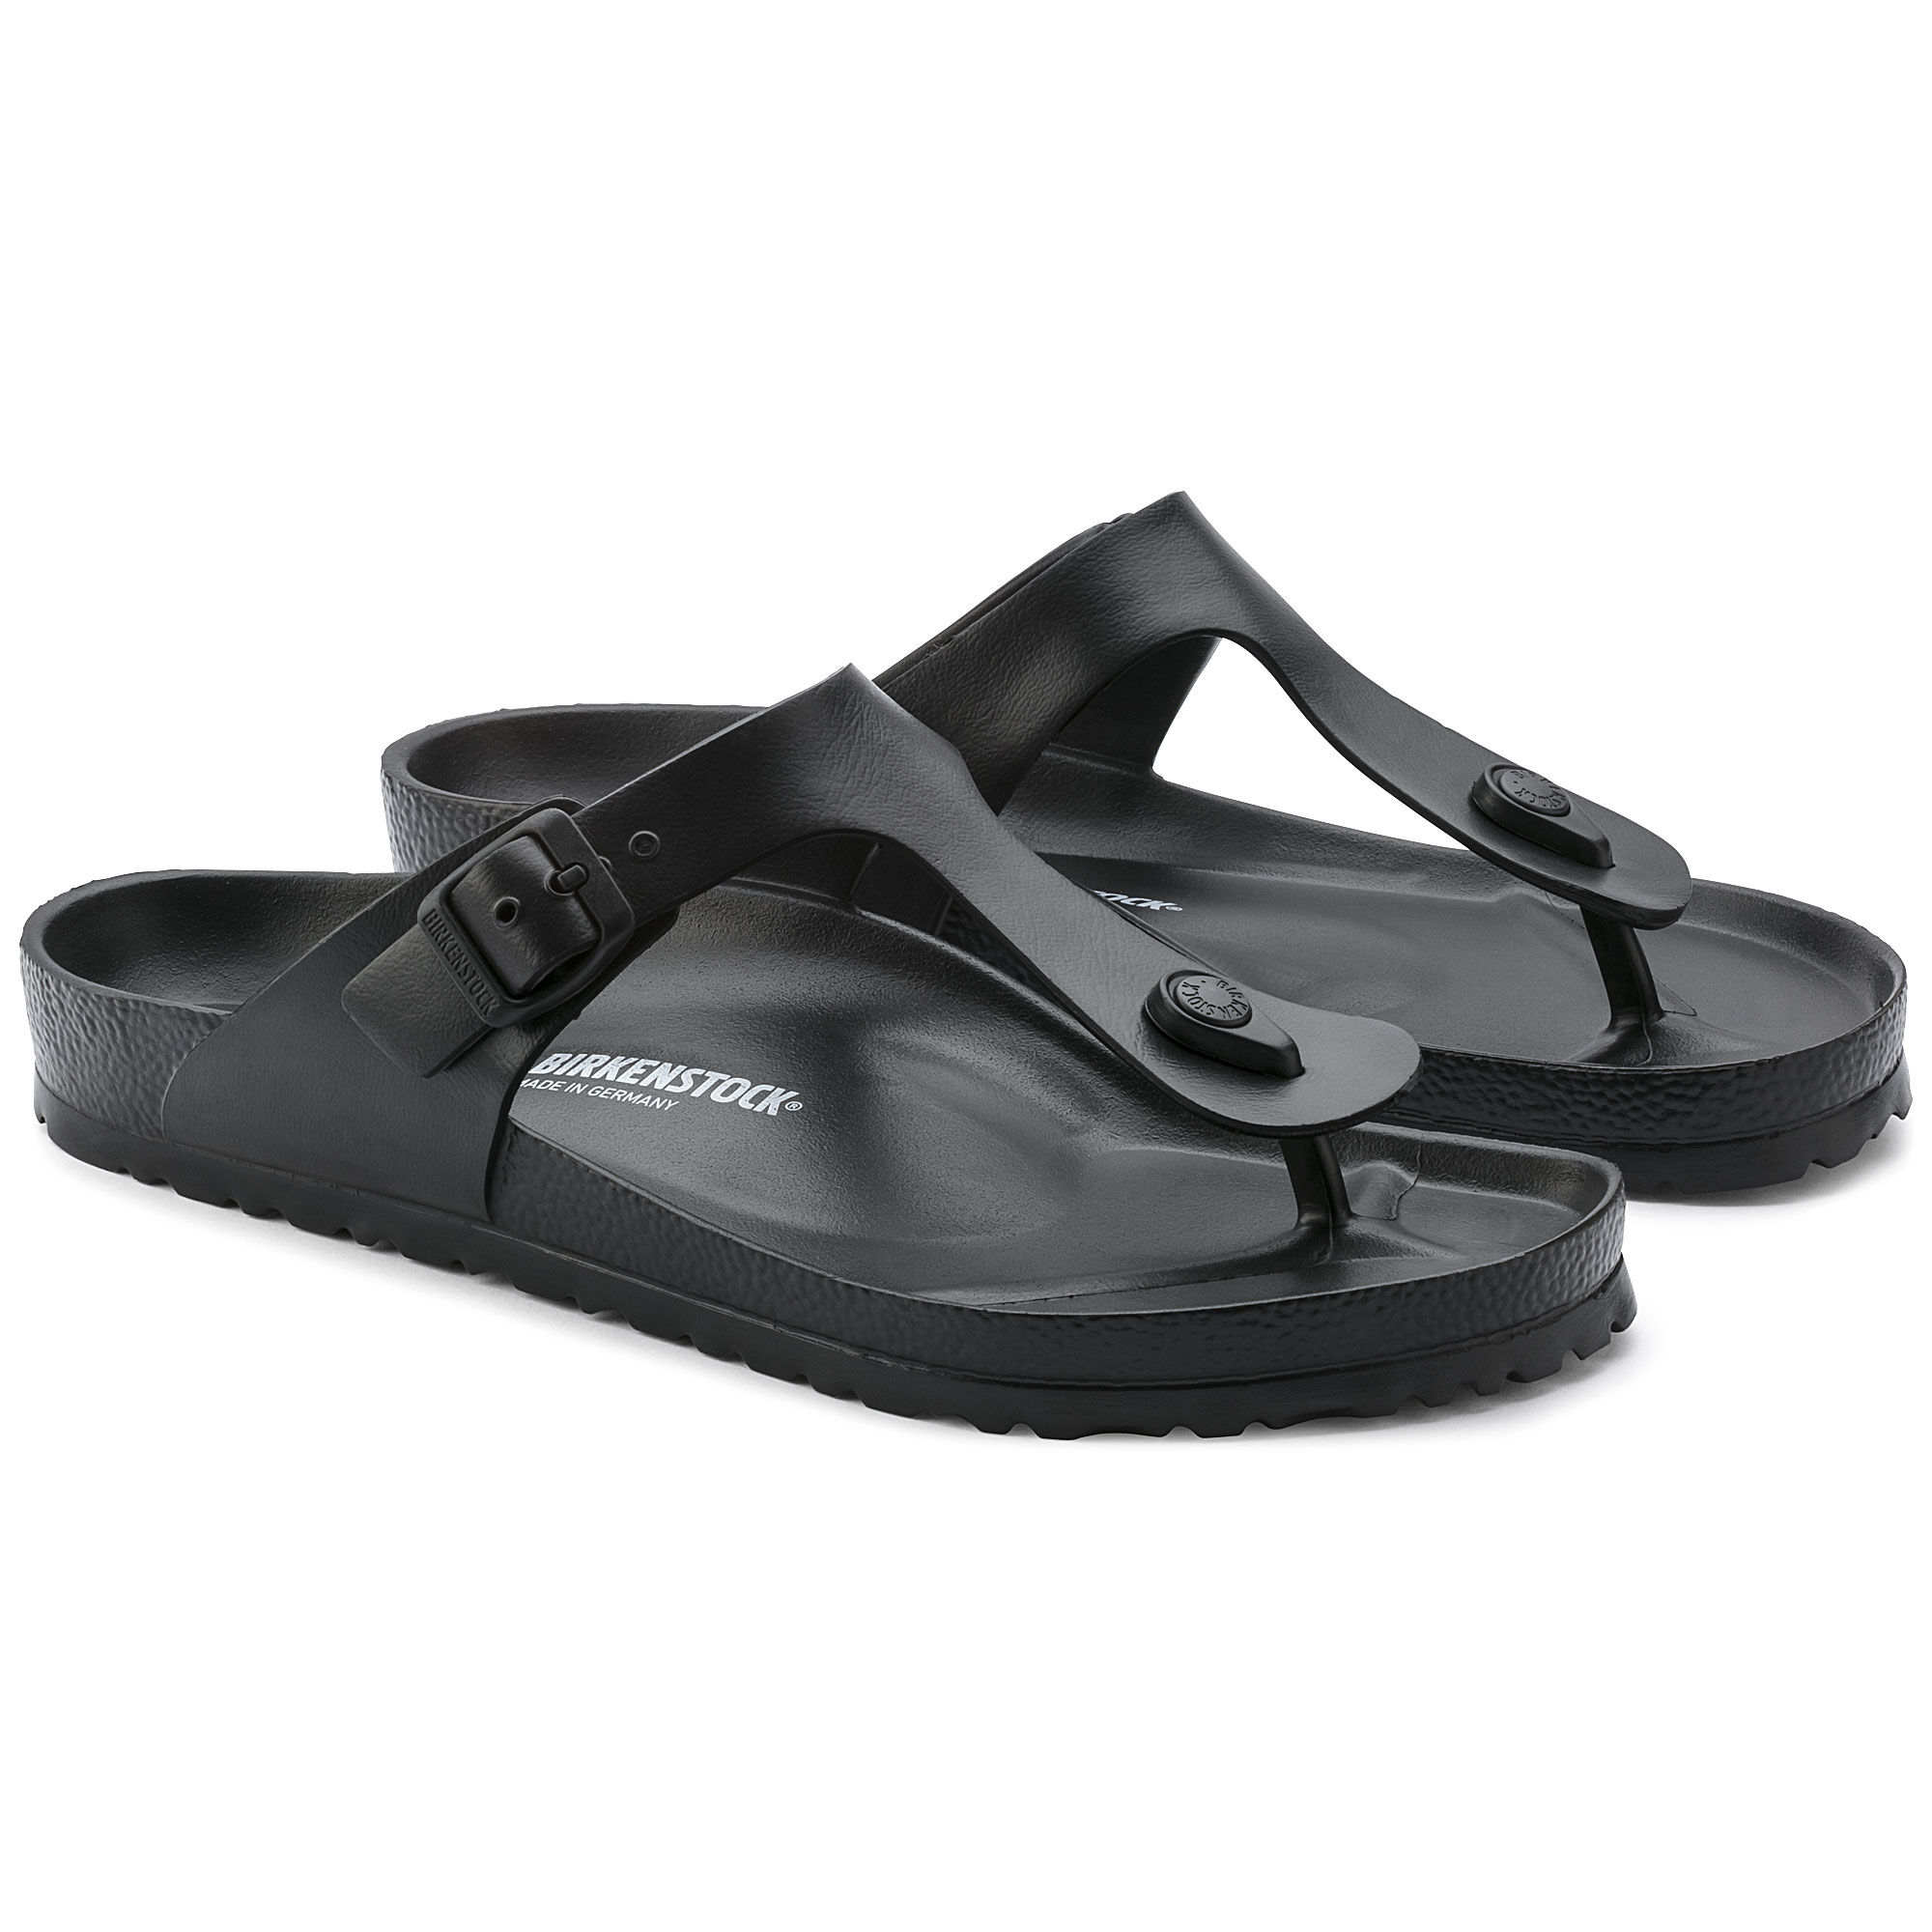 Birkenstock 128201 Classic Gizeh Eva, Women's Sandals, Black (Black), 5.5 UK (39 EU)